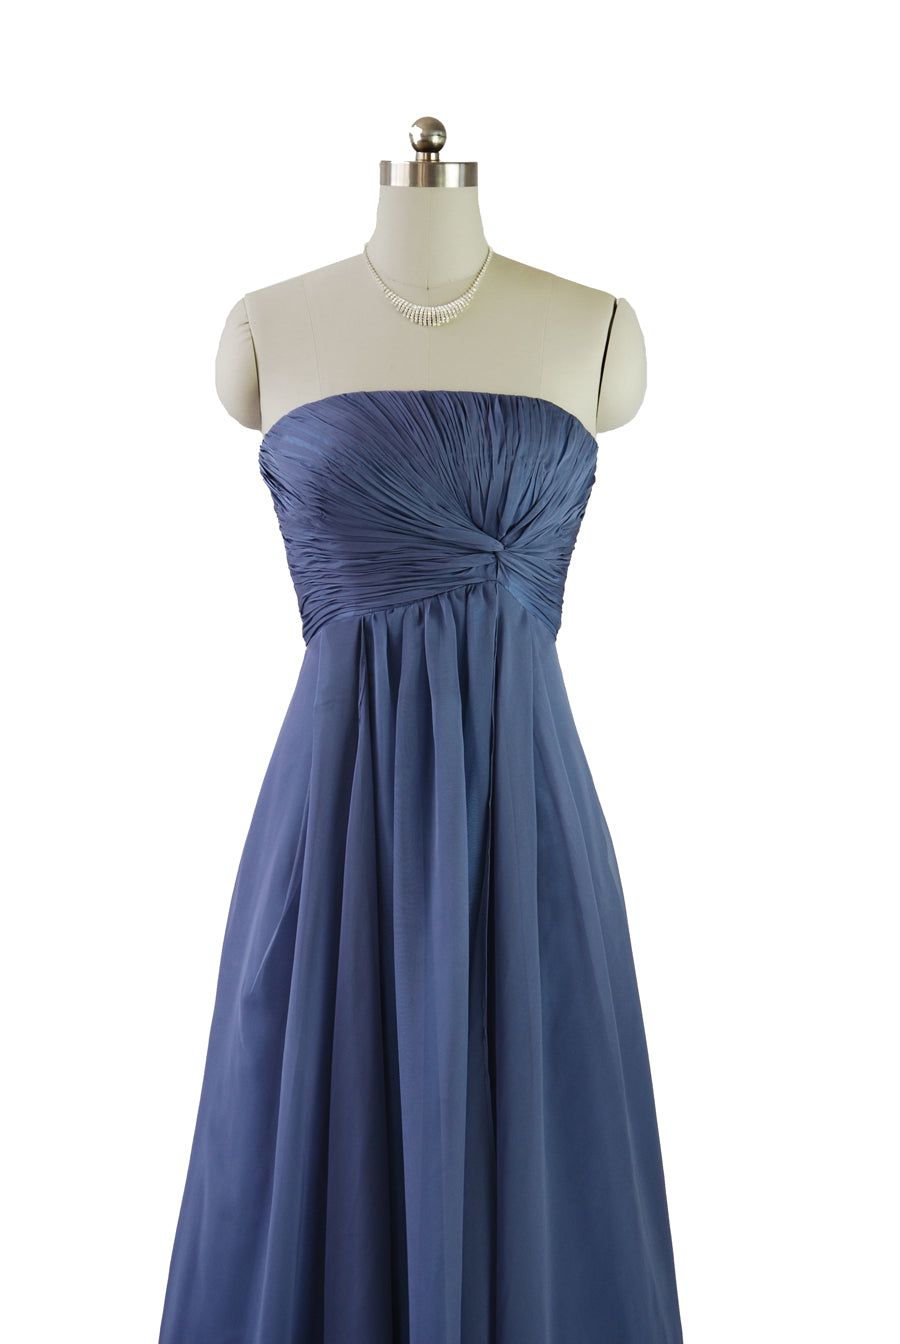 Long Blue chifon Dress for a bridesmaid, prom or evening wear